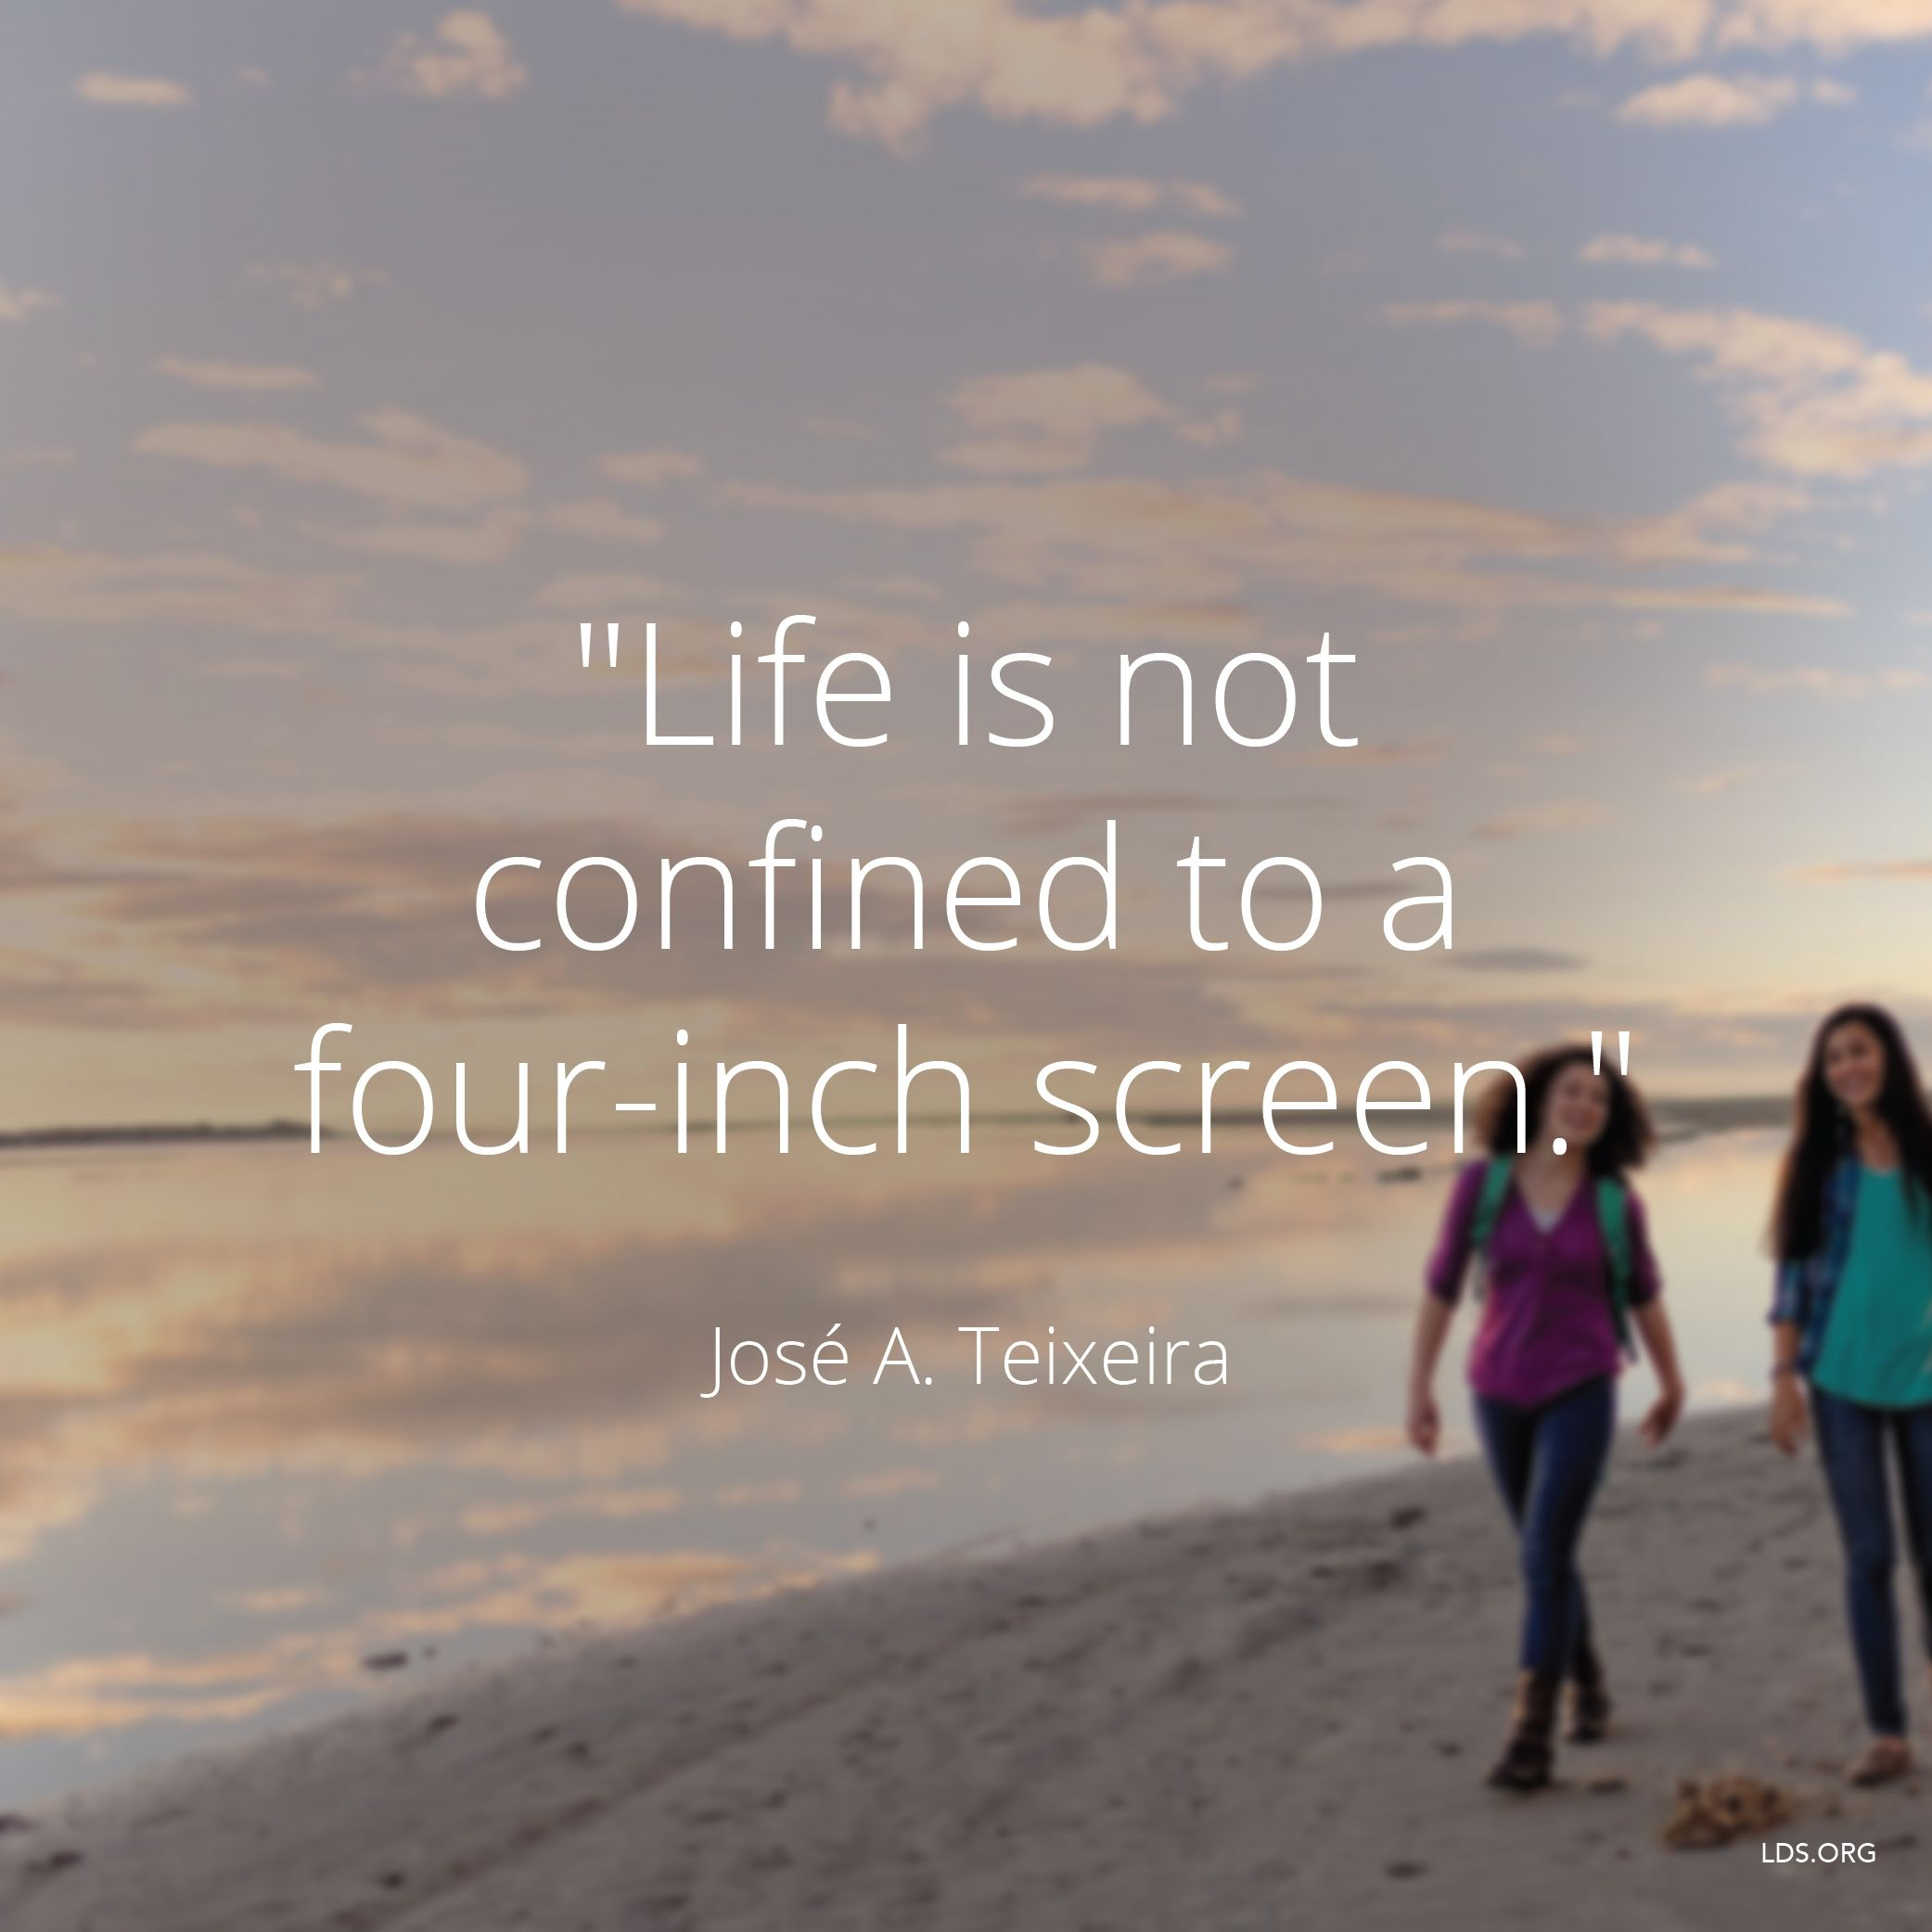 """""""Life is not confined to a four-inch screen.""""—Elder José A. Teixeira, """"Seeking the Lord"""""""